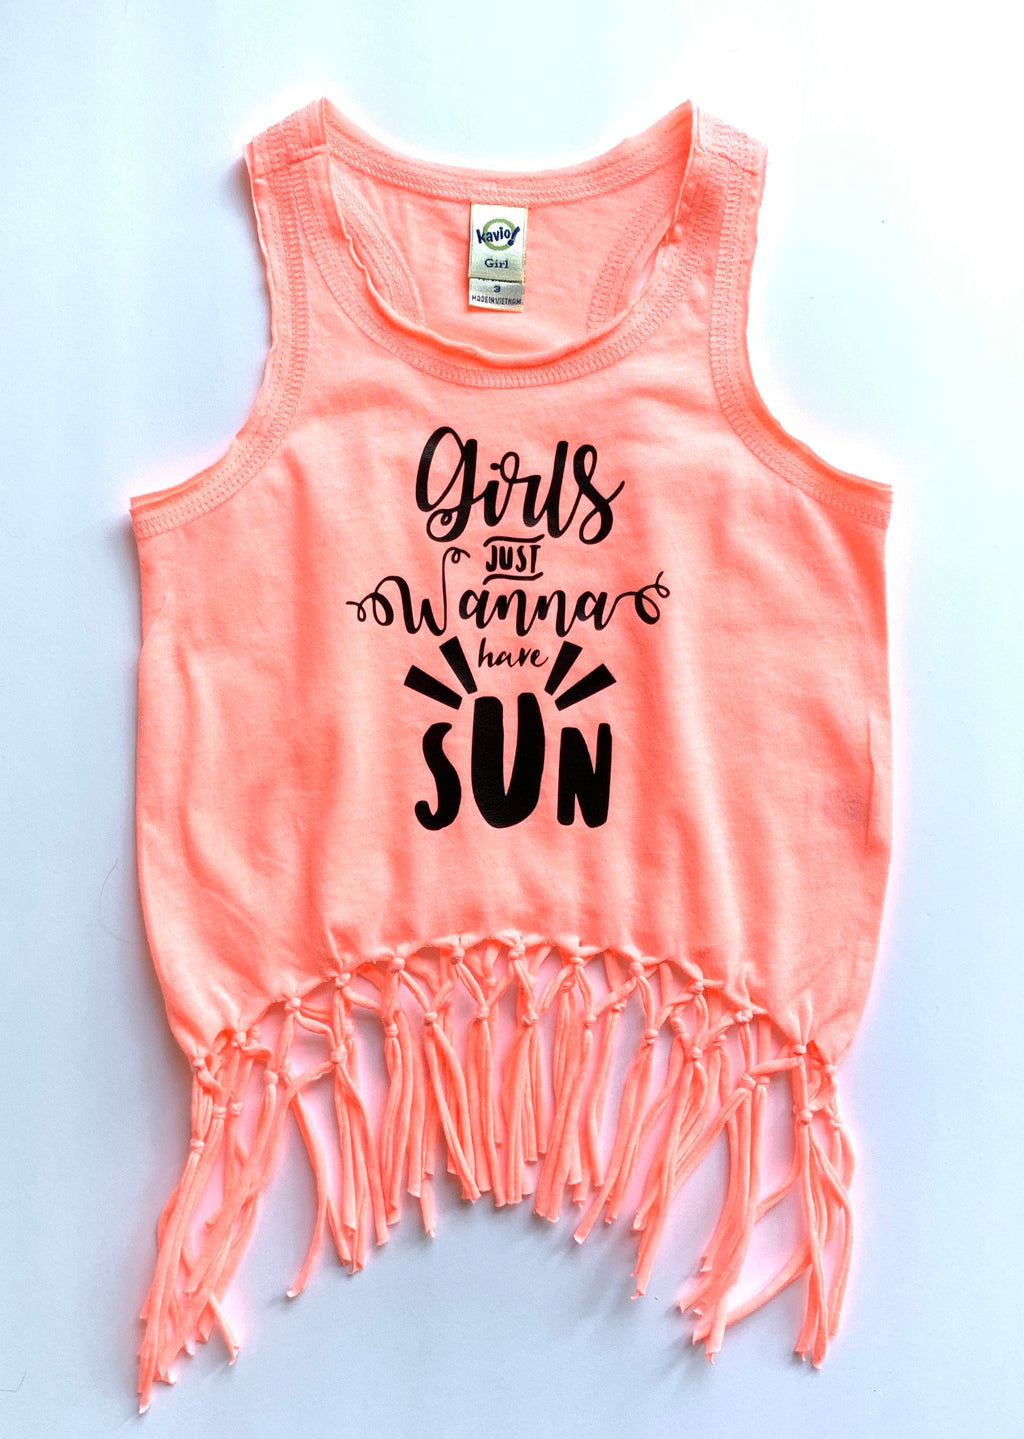 Girls Just Wanna Have Sun Racerback Fringe Tank Top -  Sun Neon Coral Pink Boho Belly Girls Shirt - Kids Summer Top